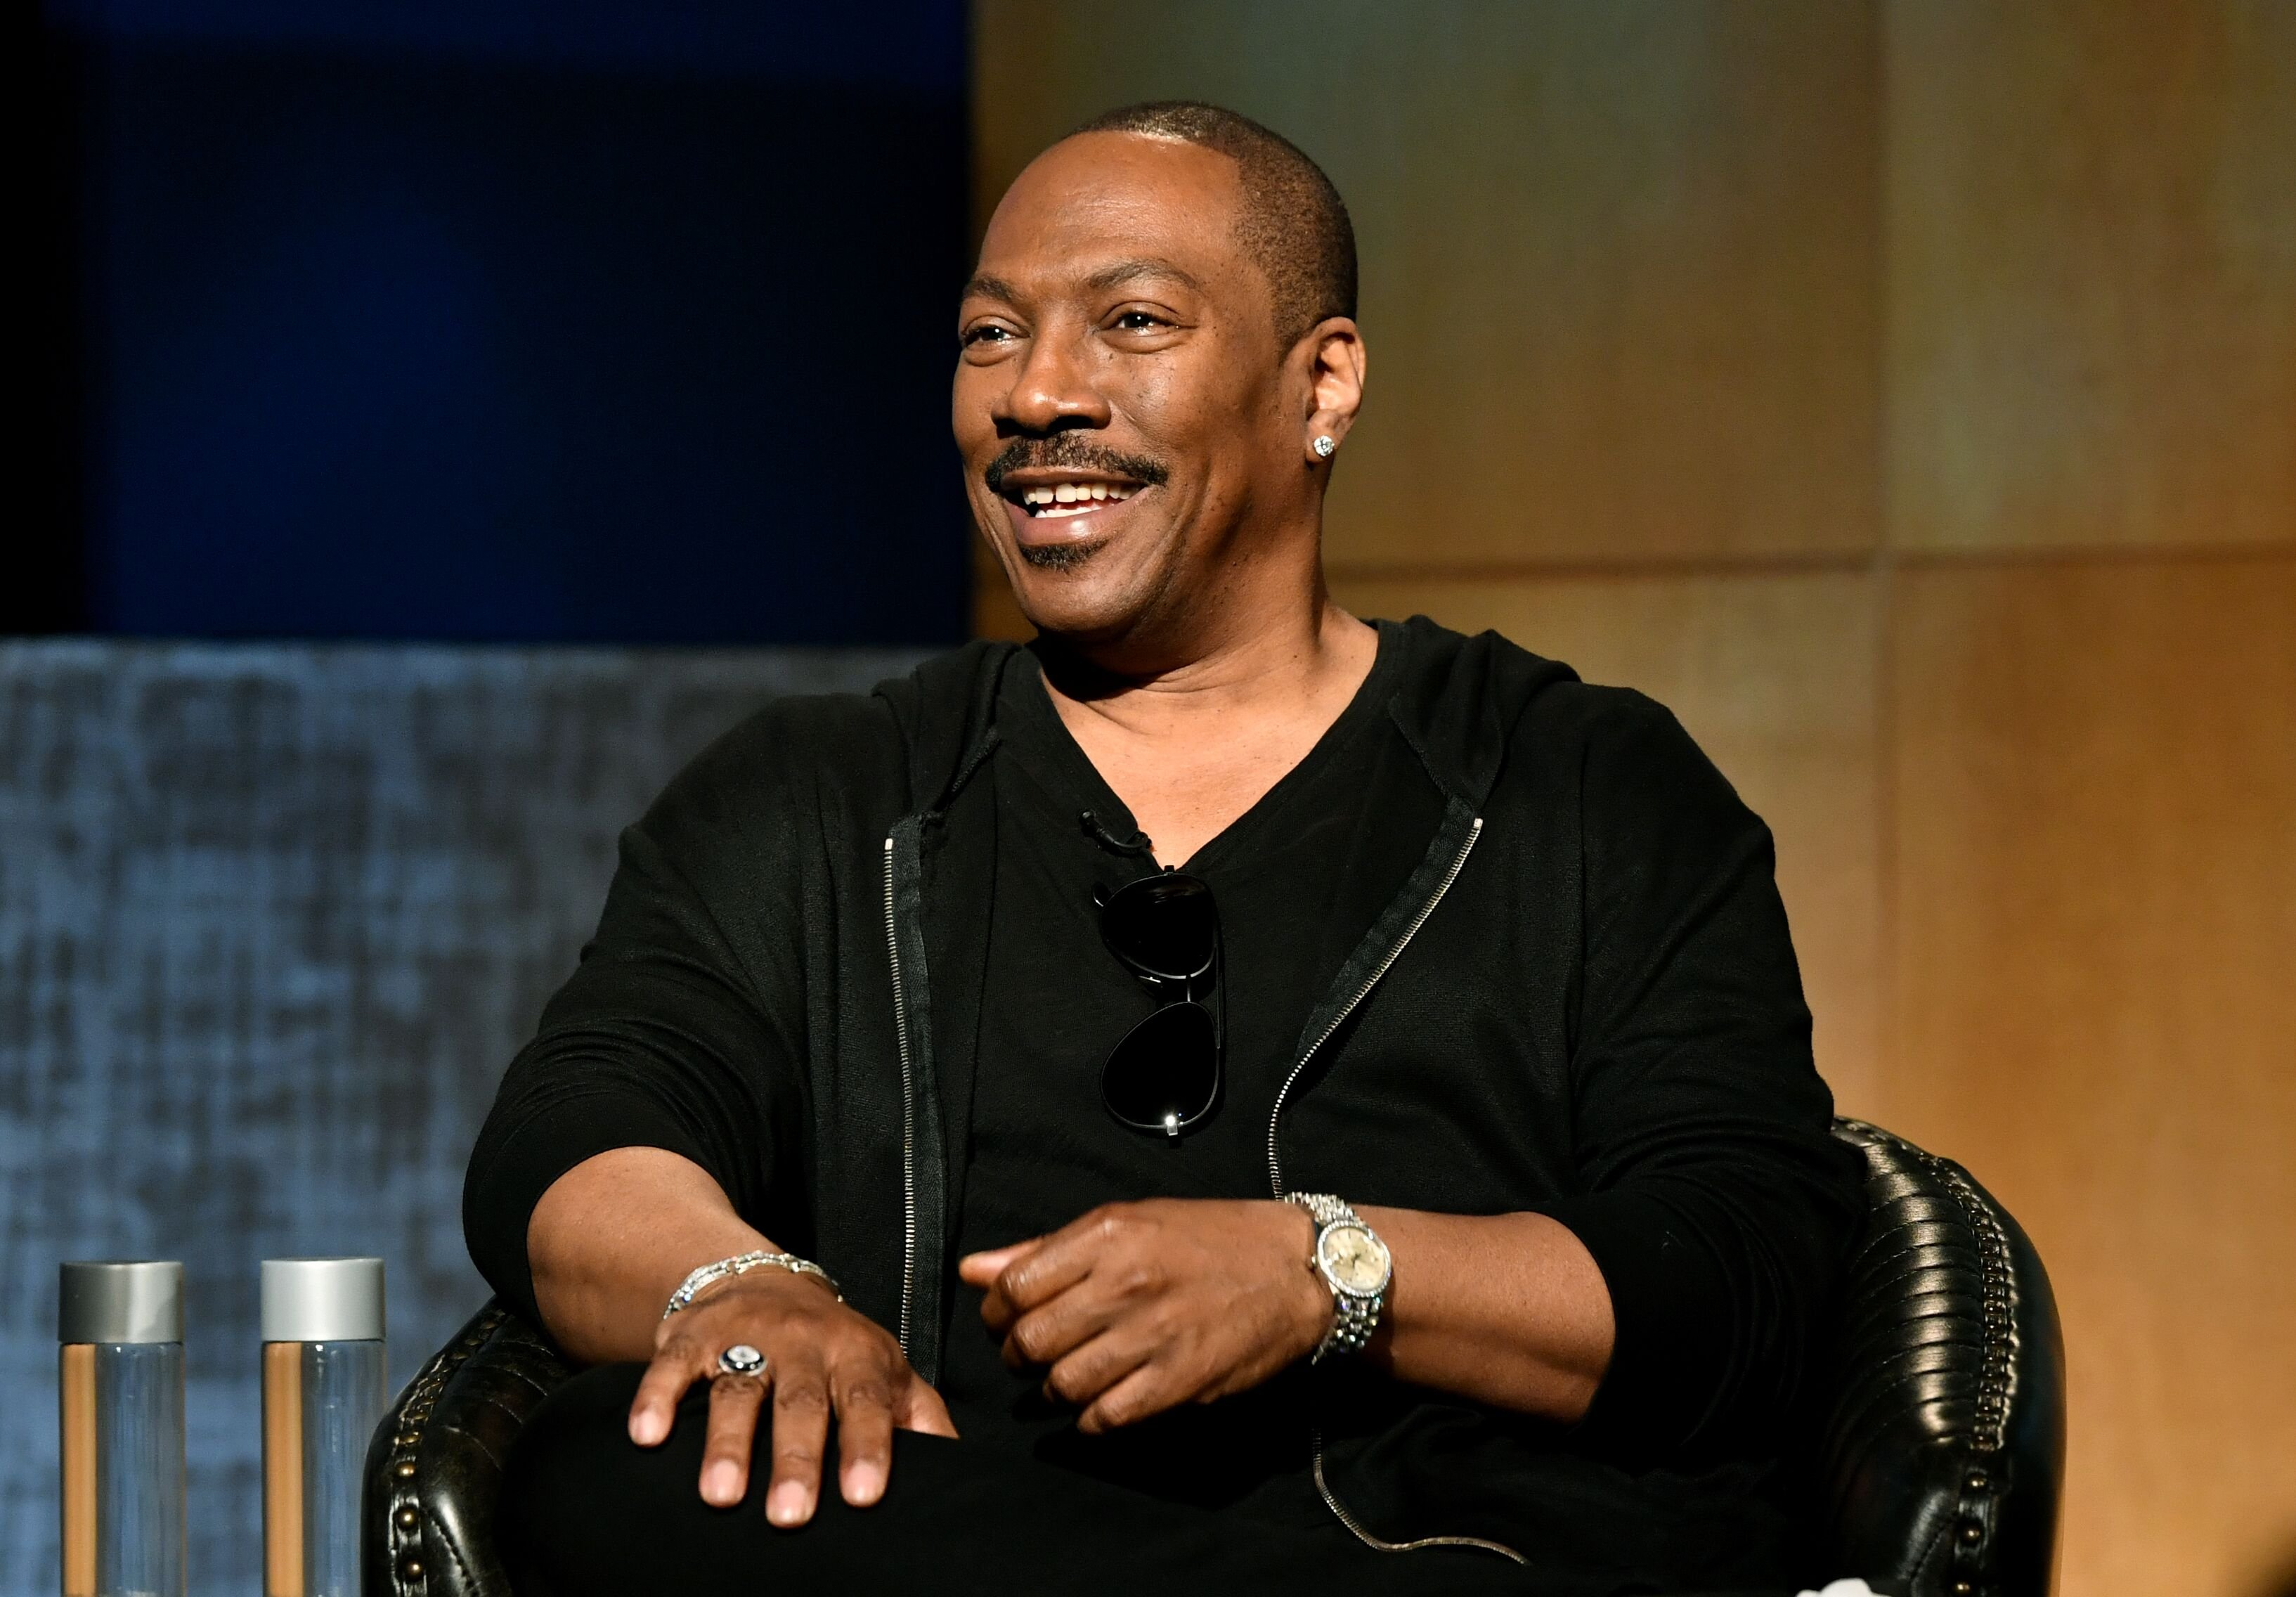 Eddie Murphy attends a speaking engagement | Source: Getty Images/GlobalImagesUkraine